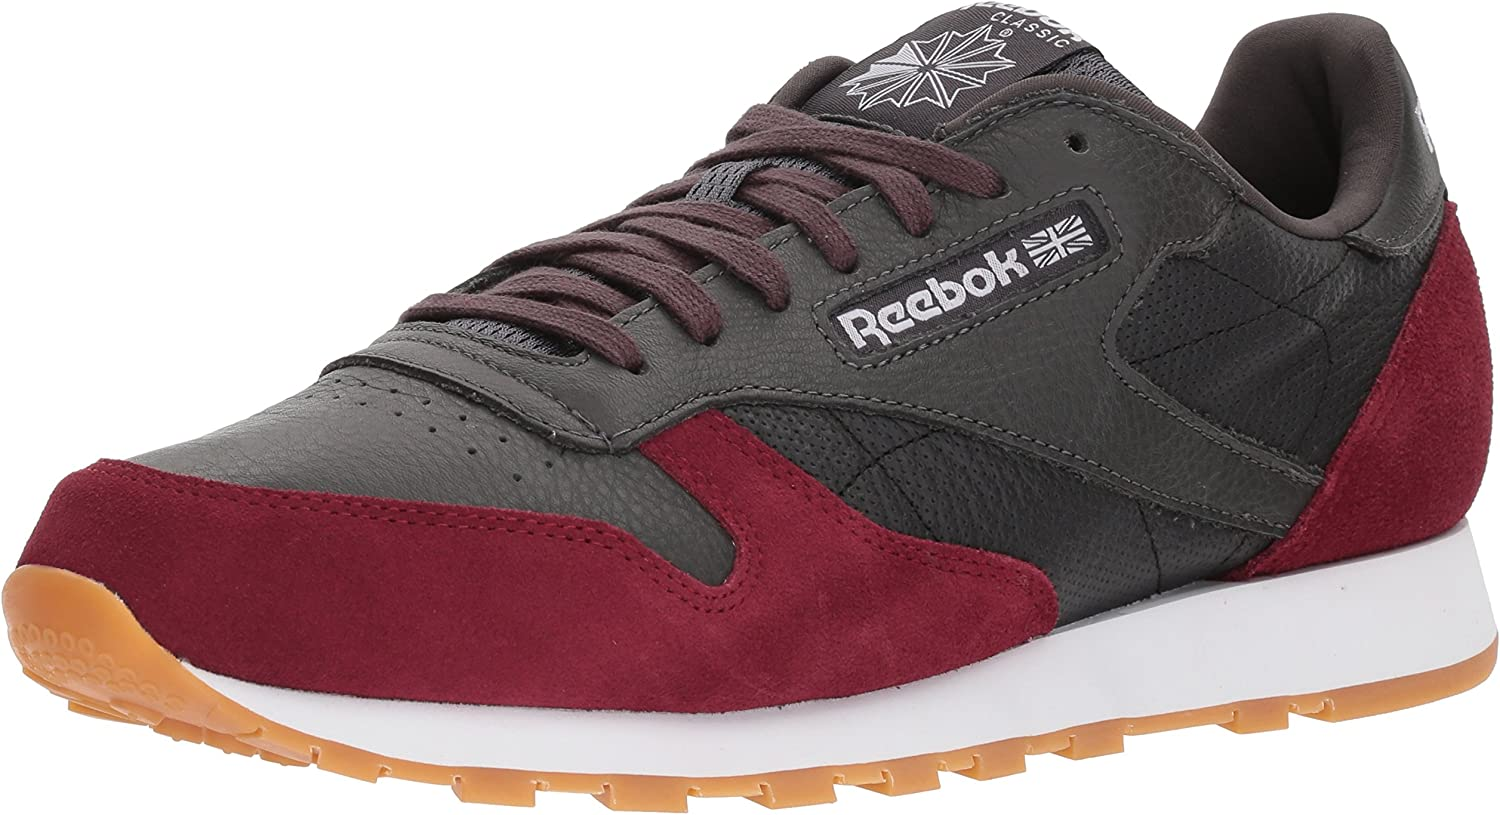 Reebok Men's CL Leather GI Cross Trainer